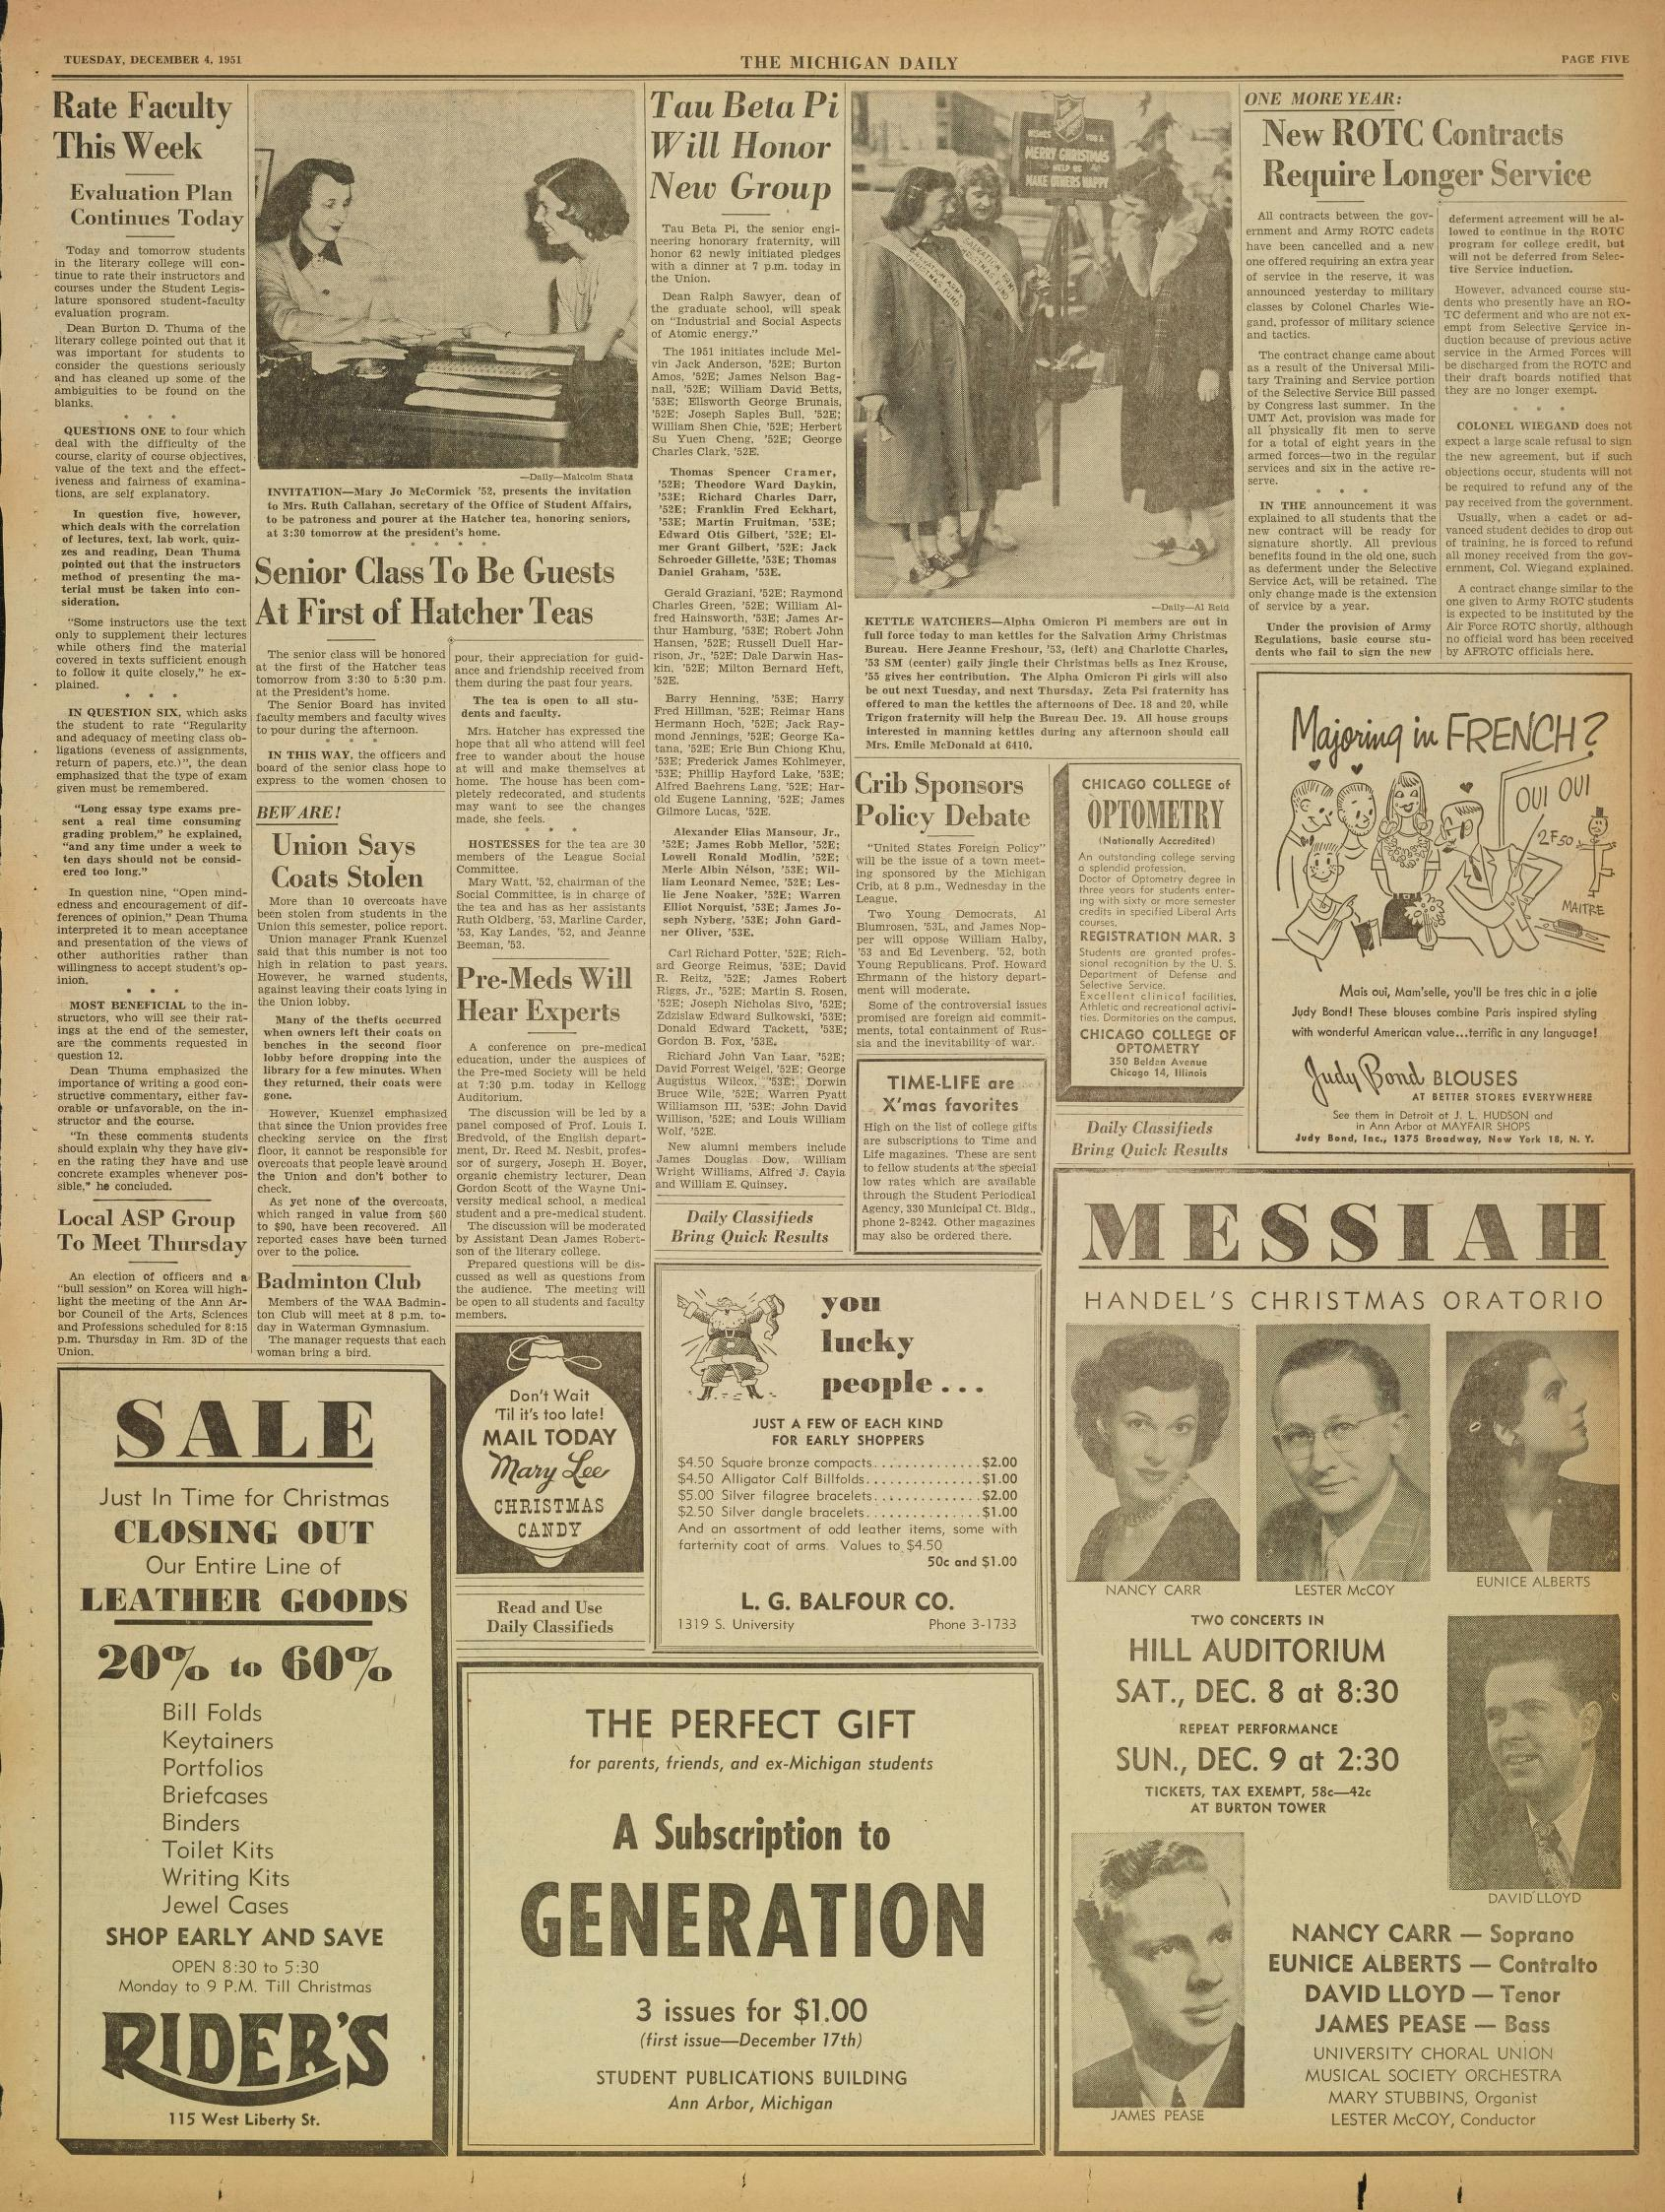 Michigan Daily Digital Archives - December 04, 1951 (vol. 62, iss ...